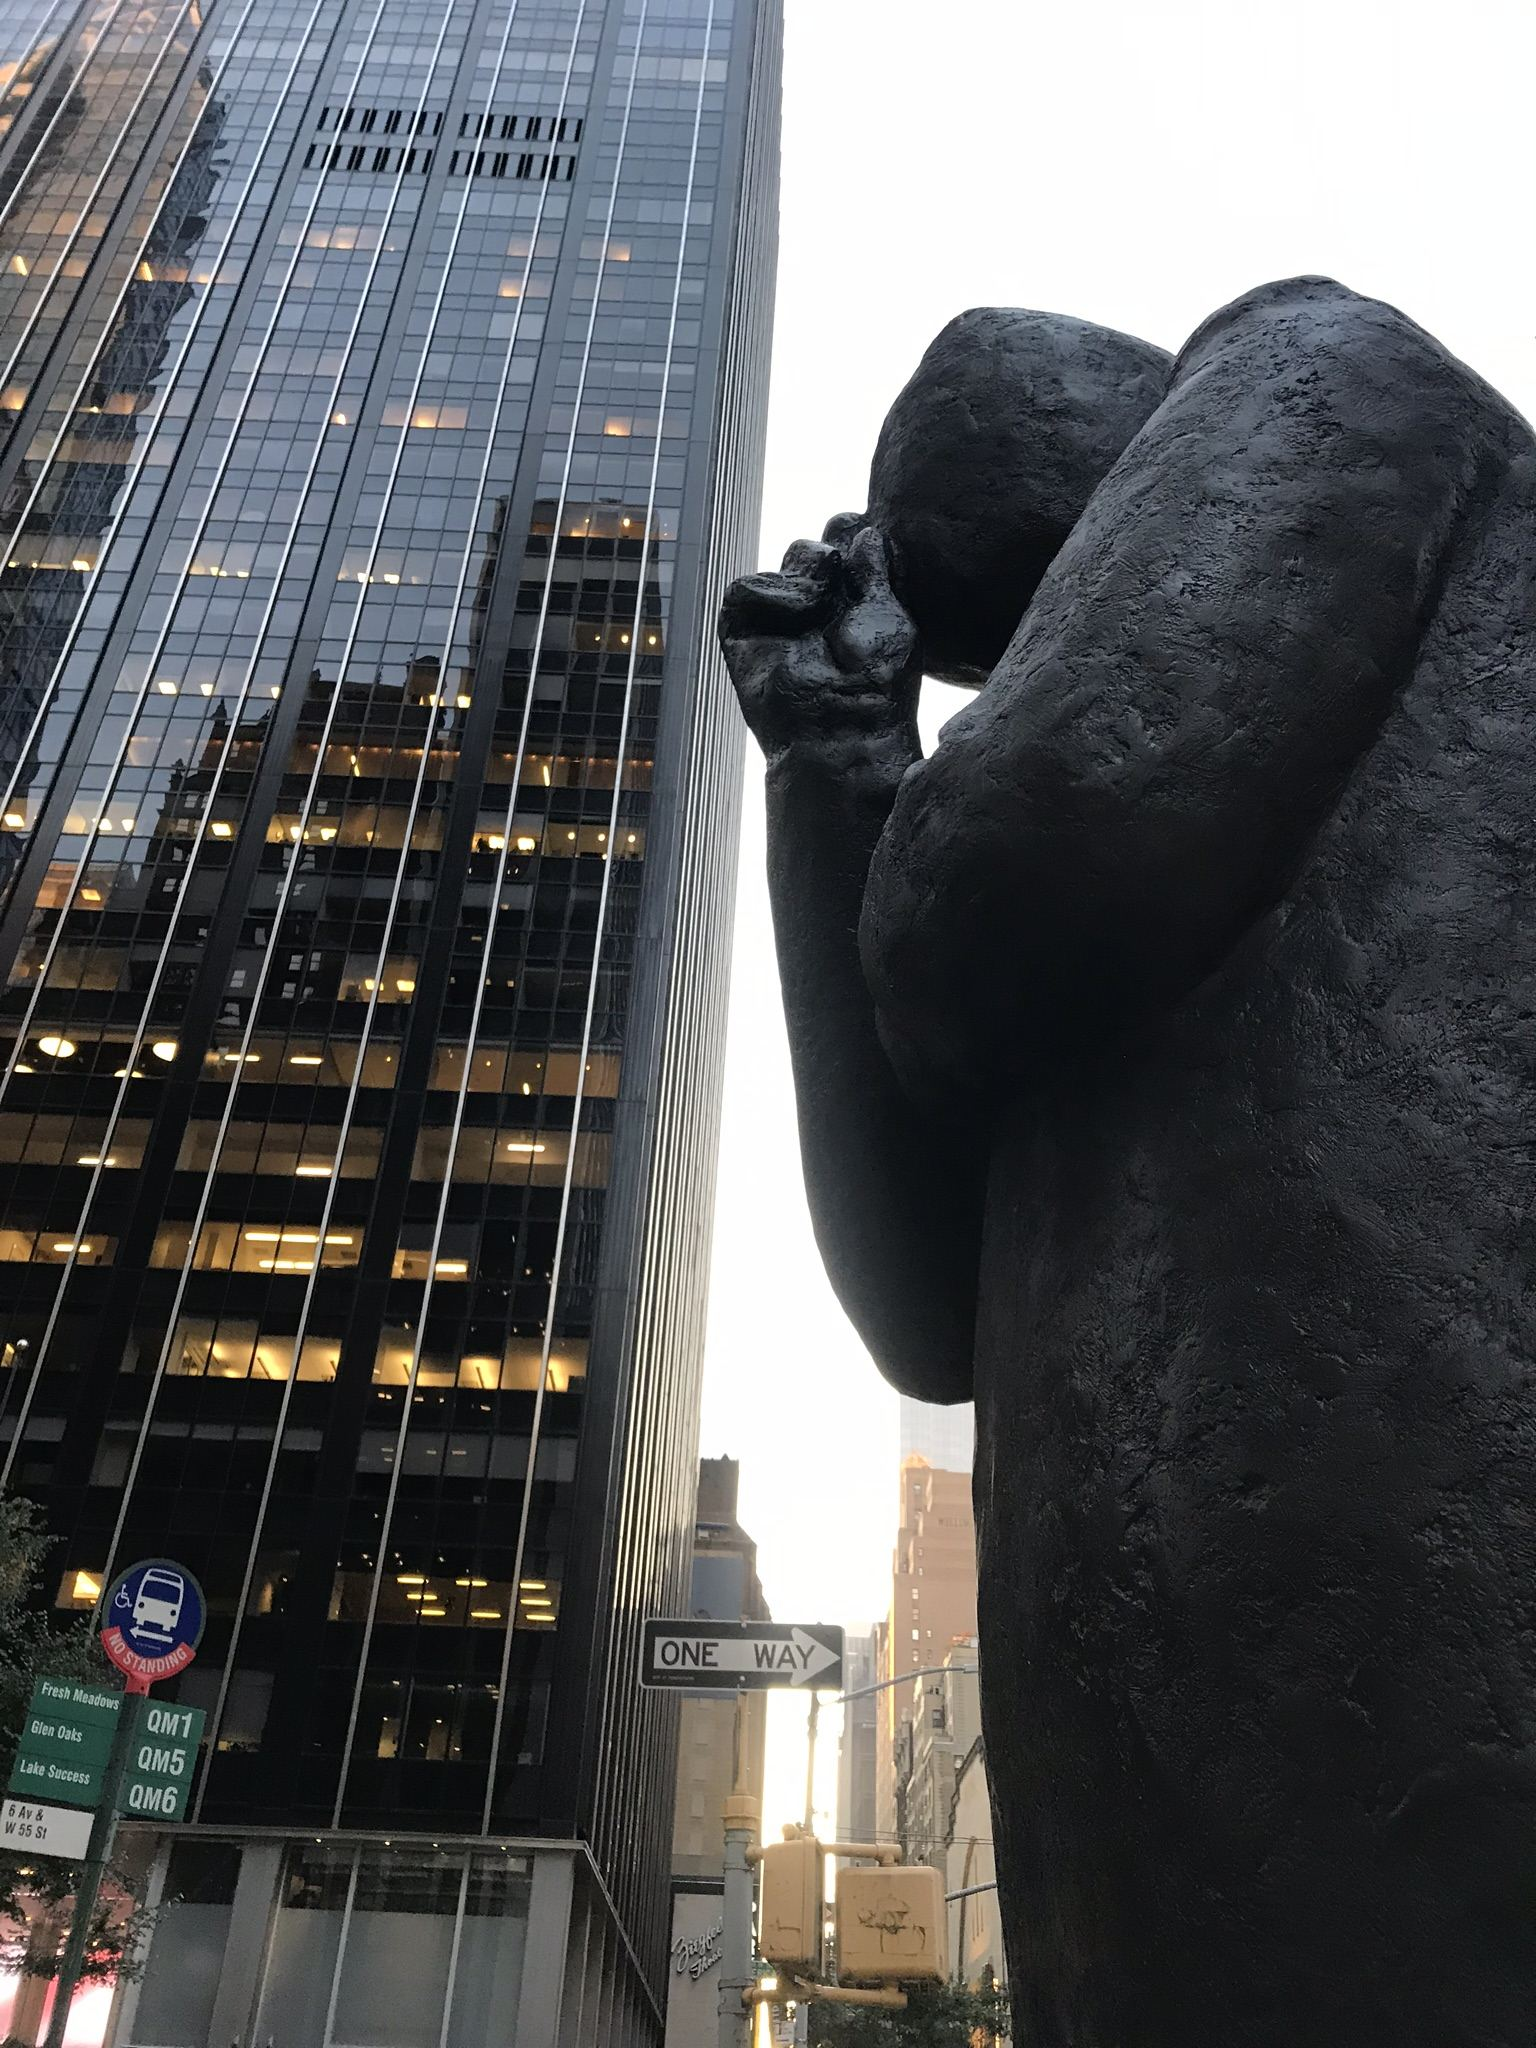 """Listen' by Jim Rennert at 1350 Avenue of The Americas"